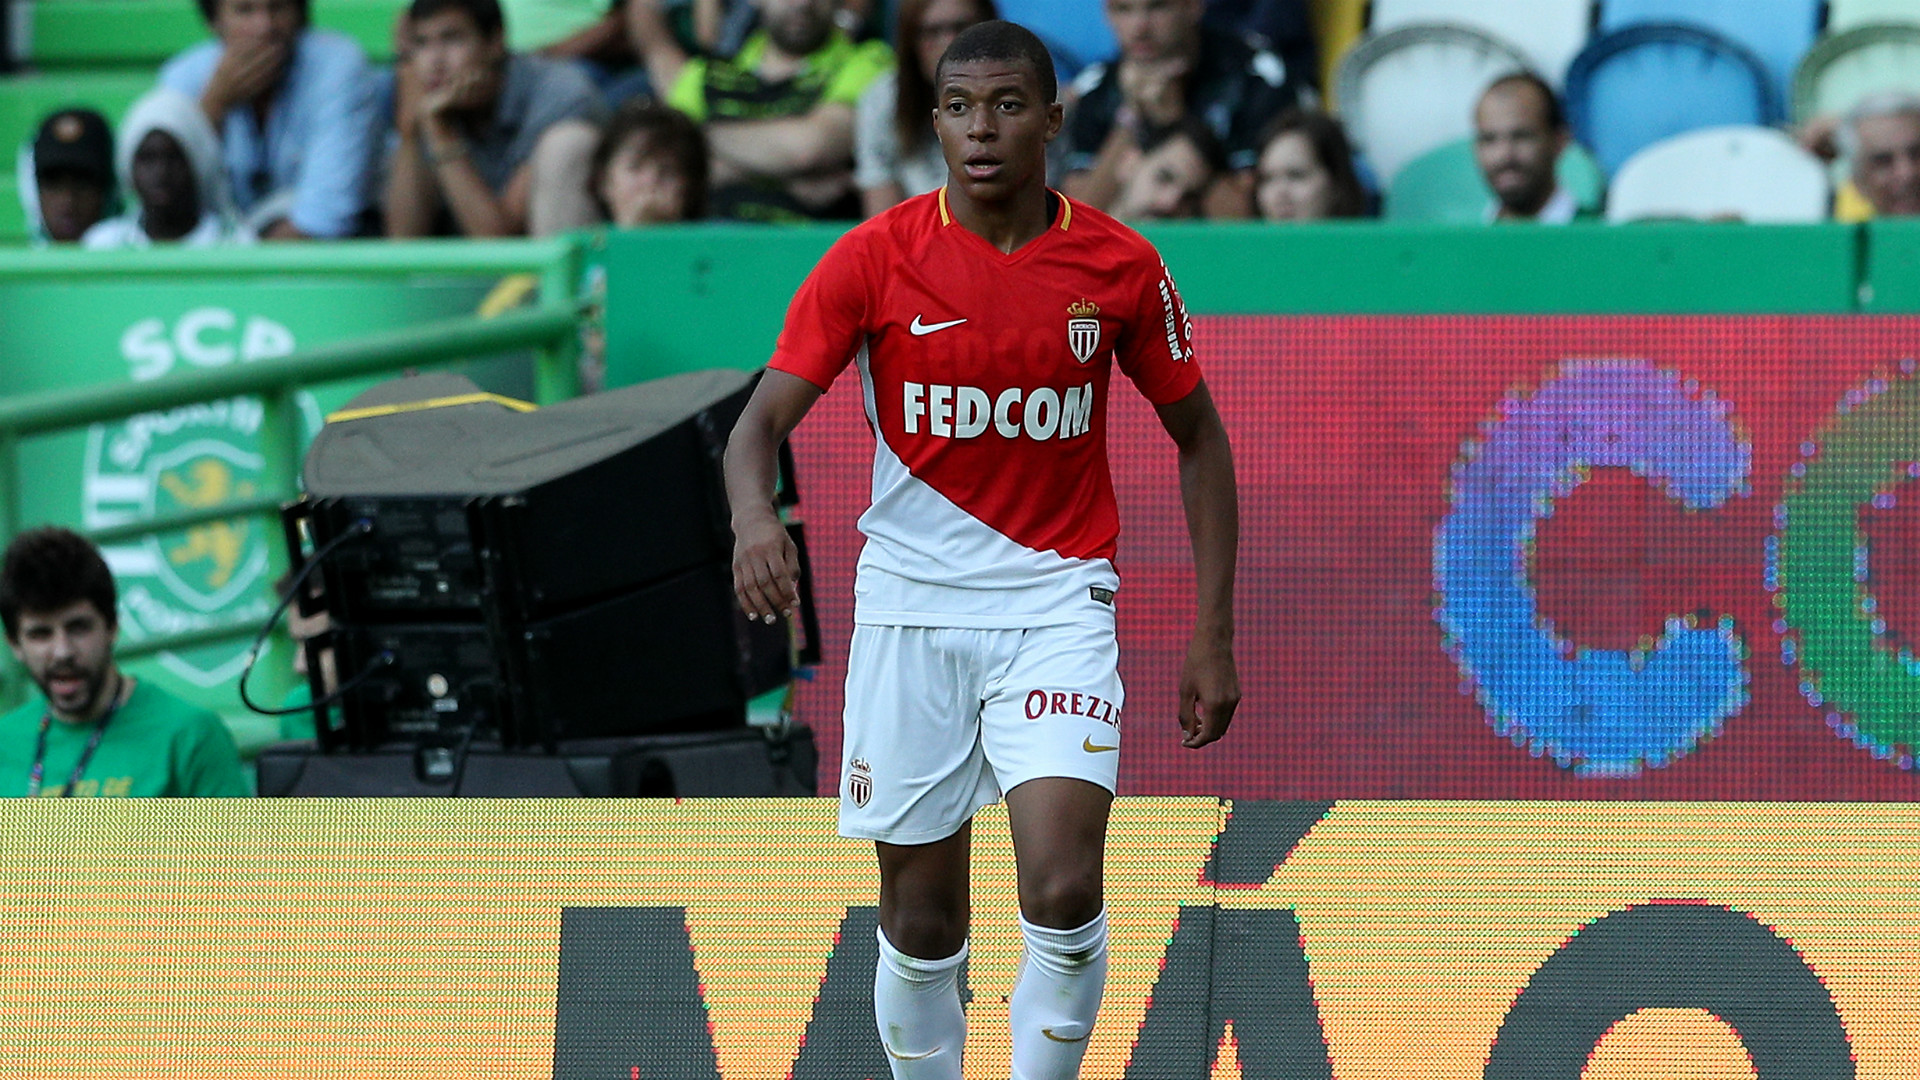 Manchester City won't join Real Madrid in battle to sign Kylian Mbappe